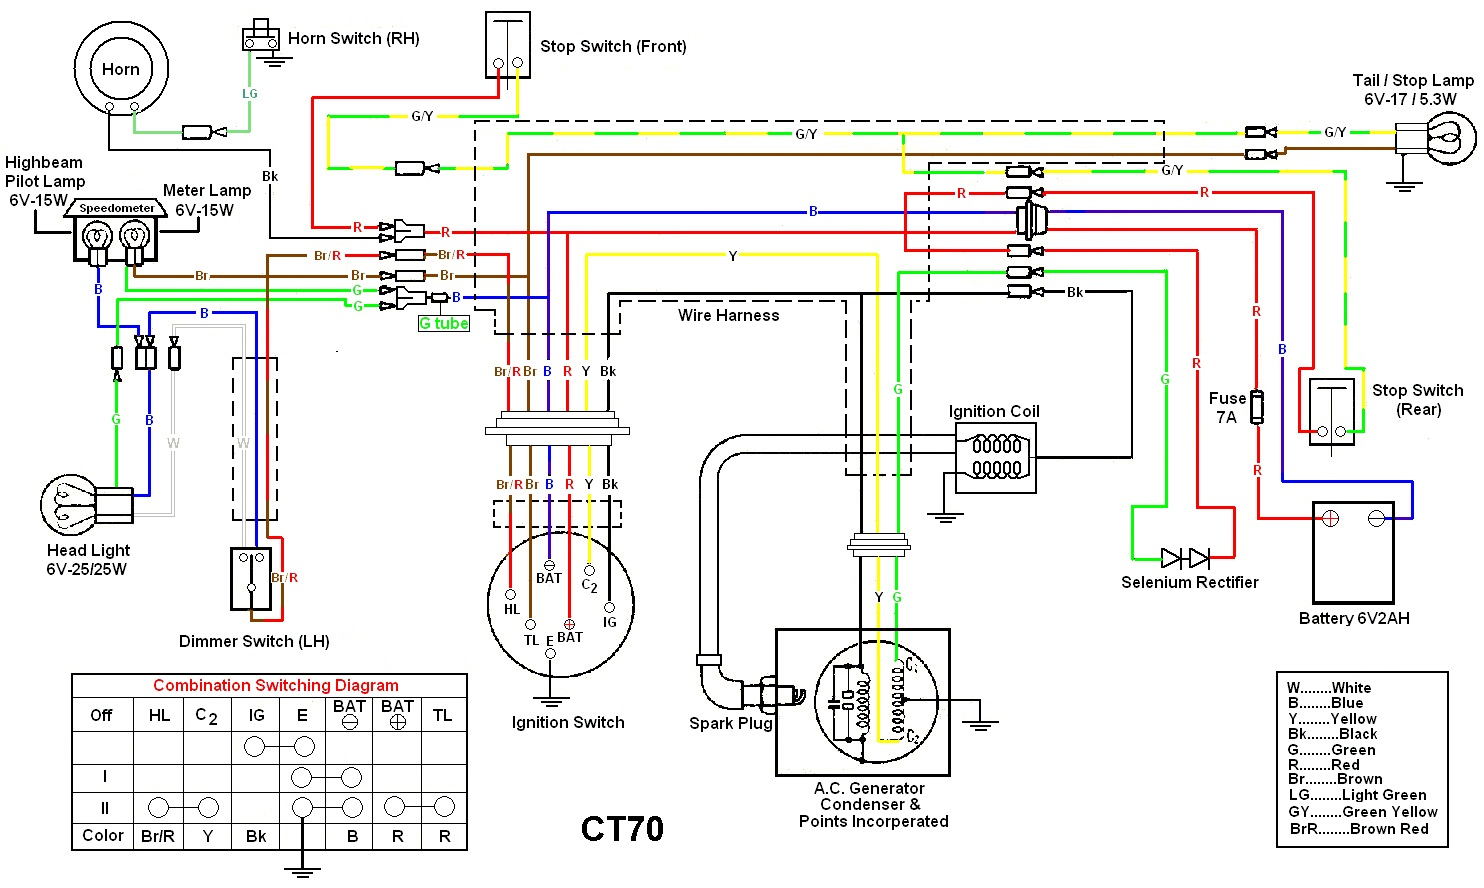 baja 49cc wiring diagram Images Gallery